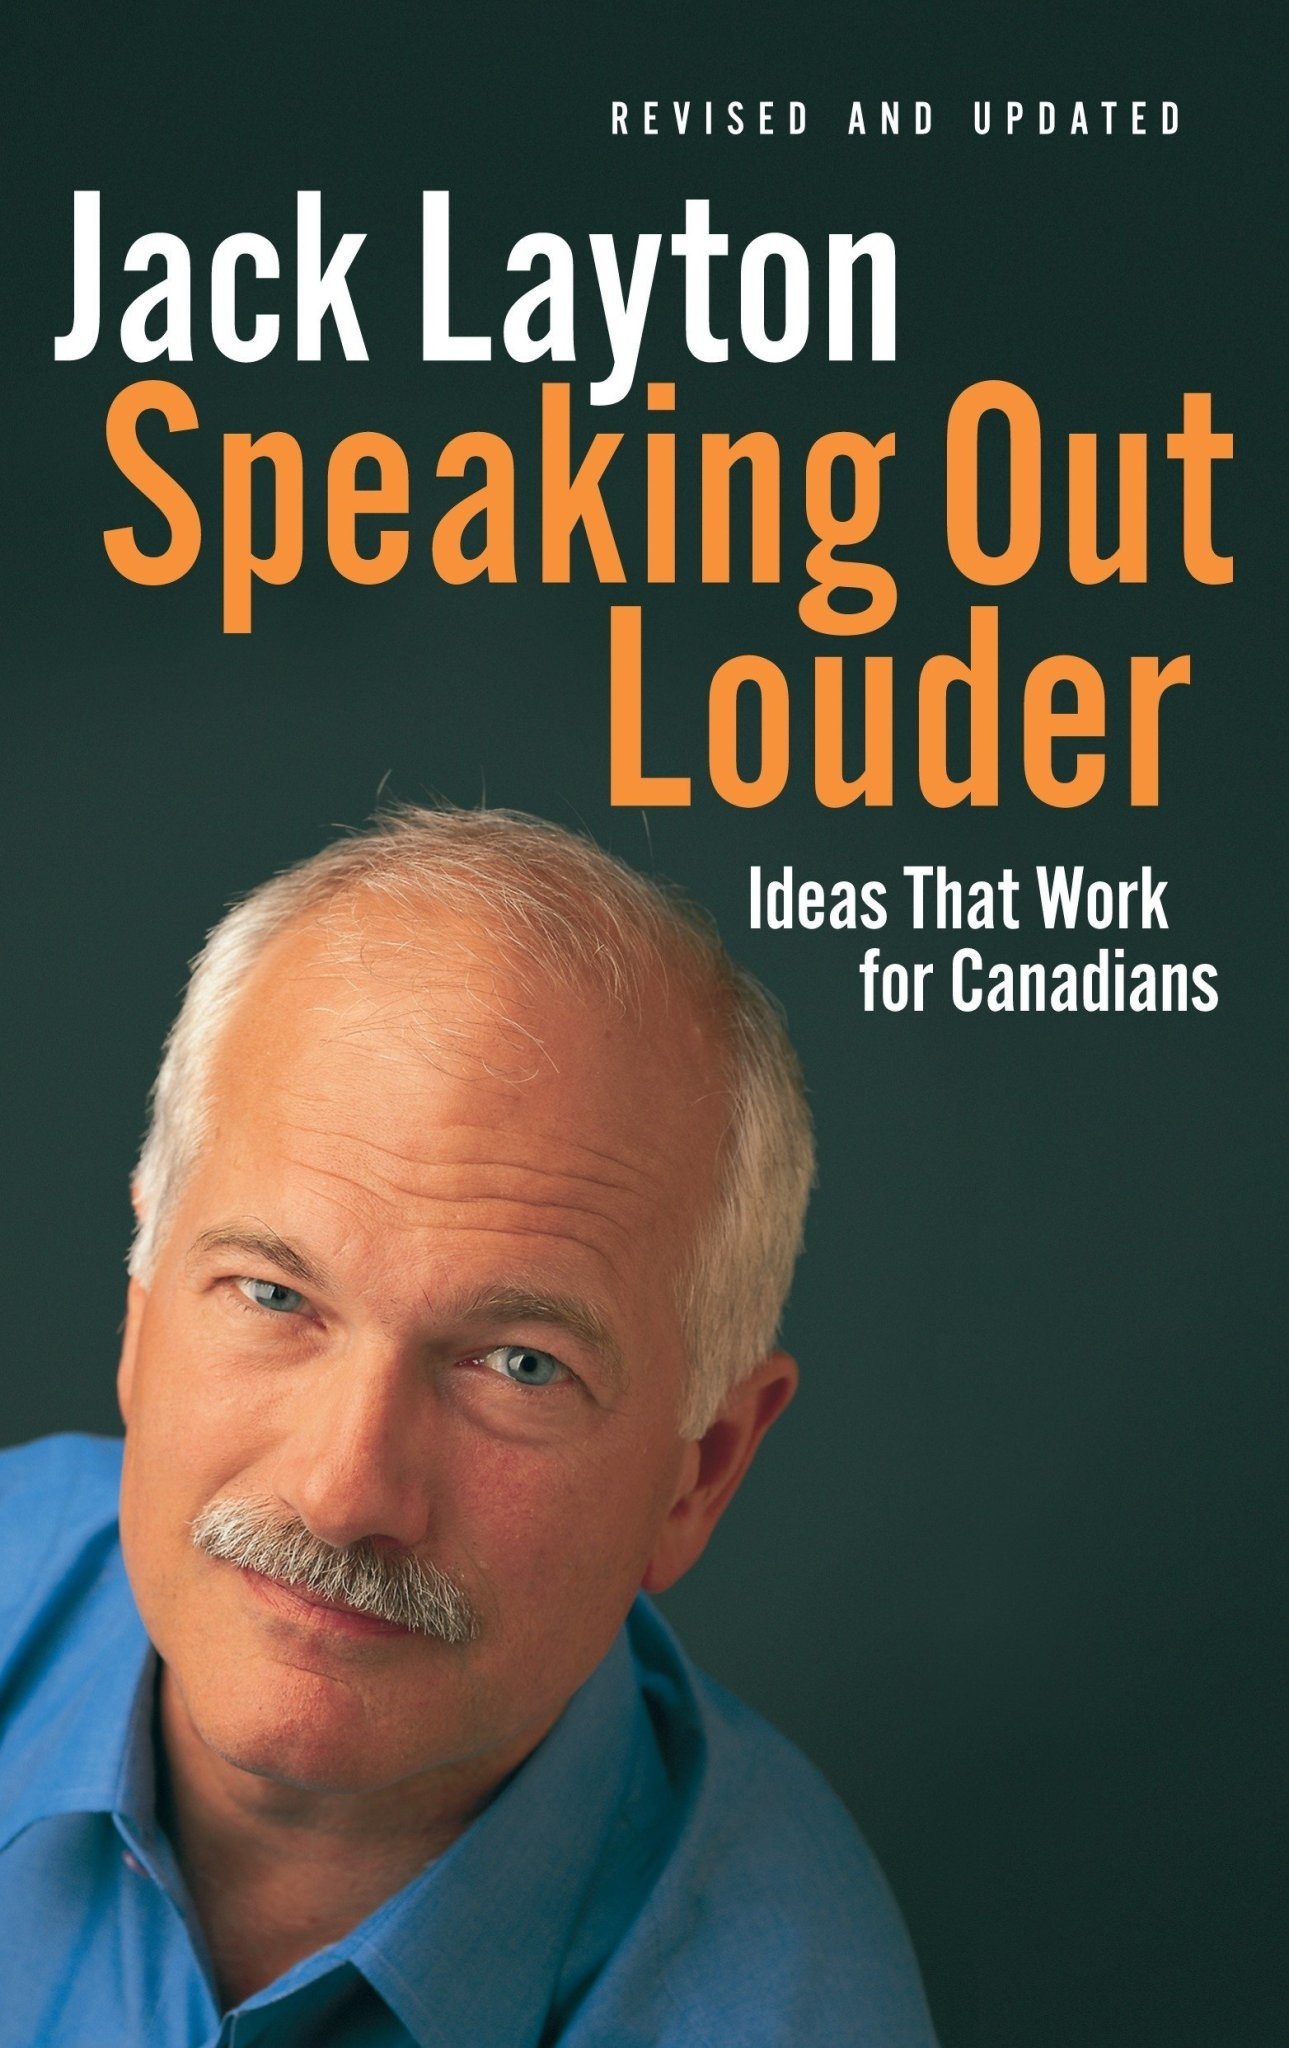 Speaking Out Louder: Ideas That Work for Canadians 3rd. ed.